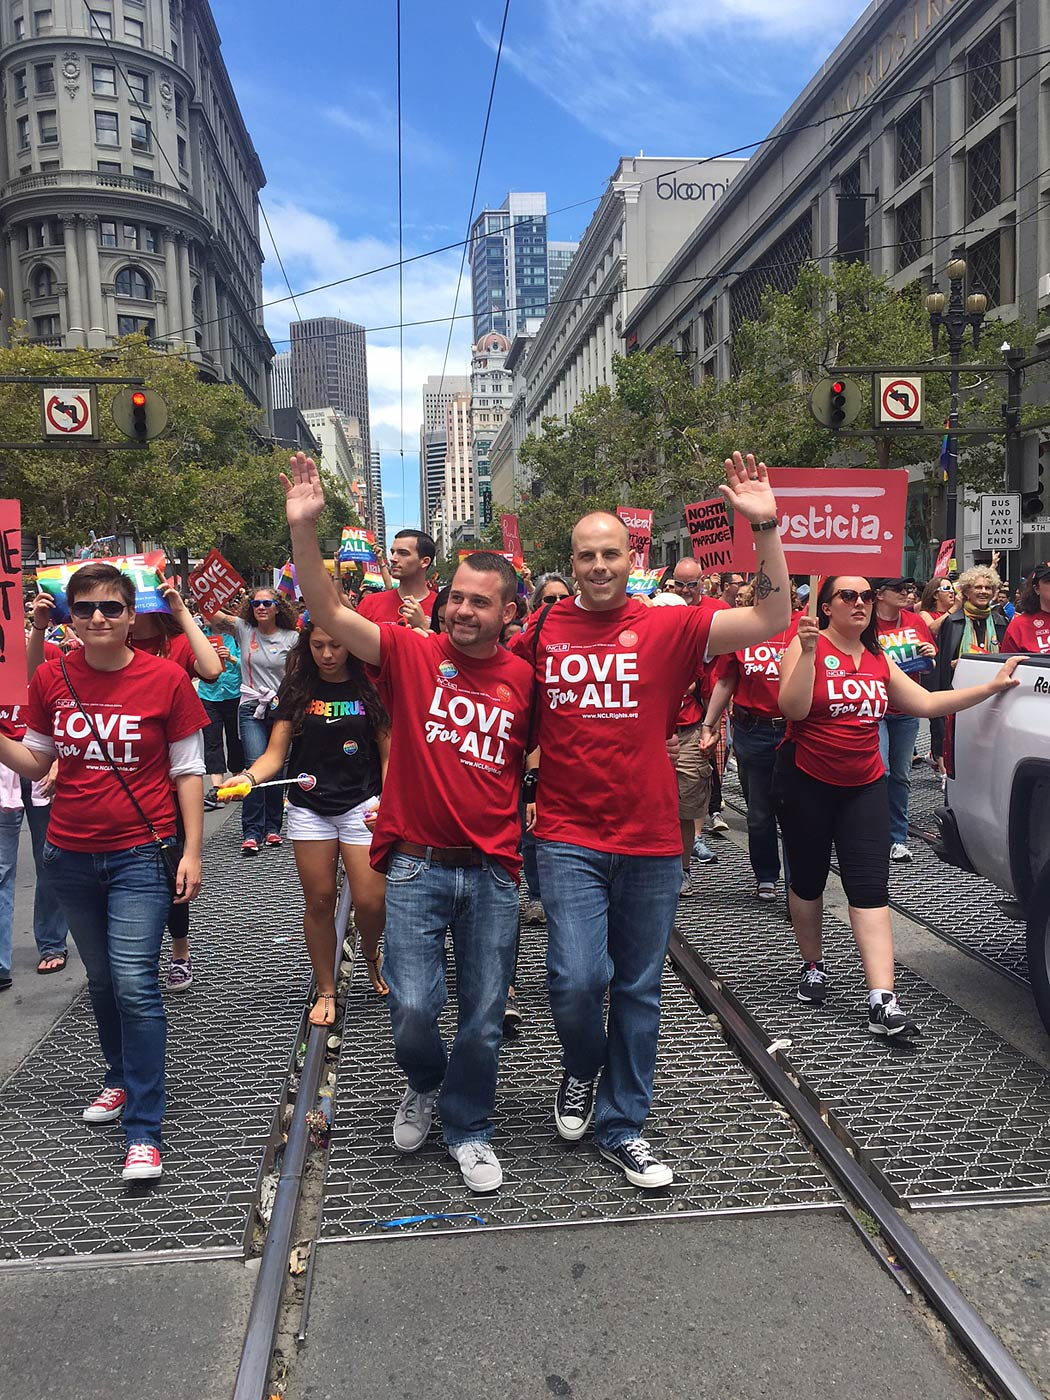 Plaintiffs Thom Kostura (left) and his husband Ijpe DeKoe (right) march in the gay pride parade in San Francisco on June 28, 2015.